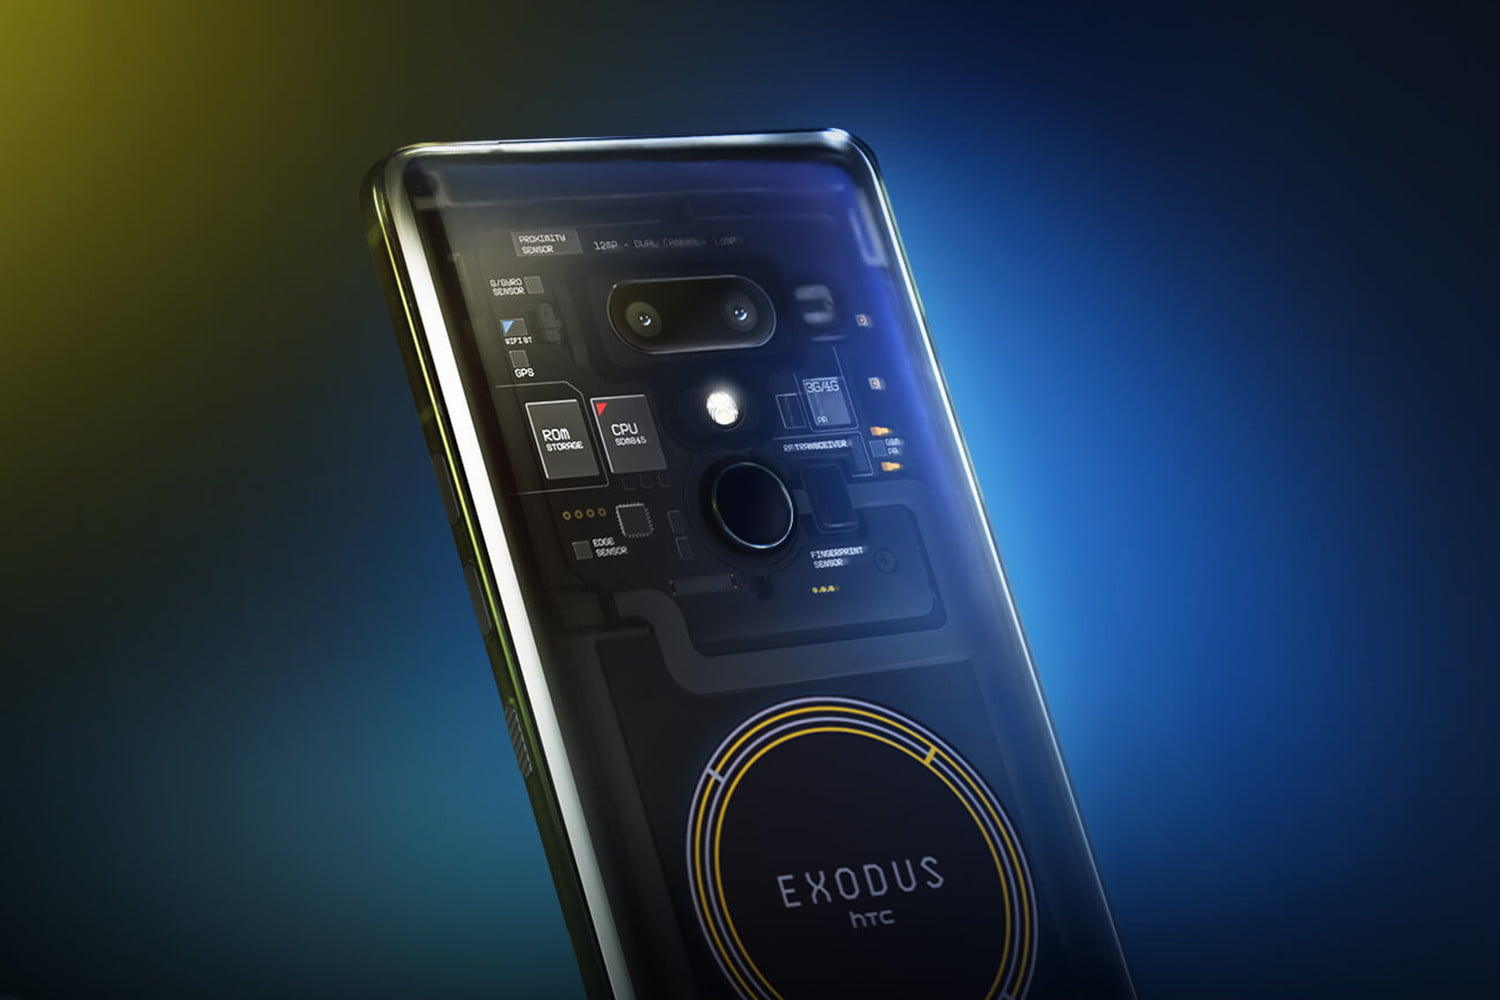 hight resolution of what is a blockchain phone we asked an expert blockchainphone feature 2